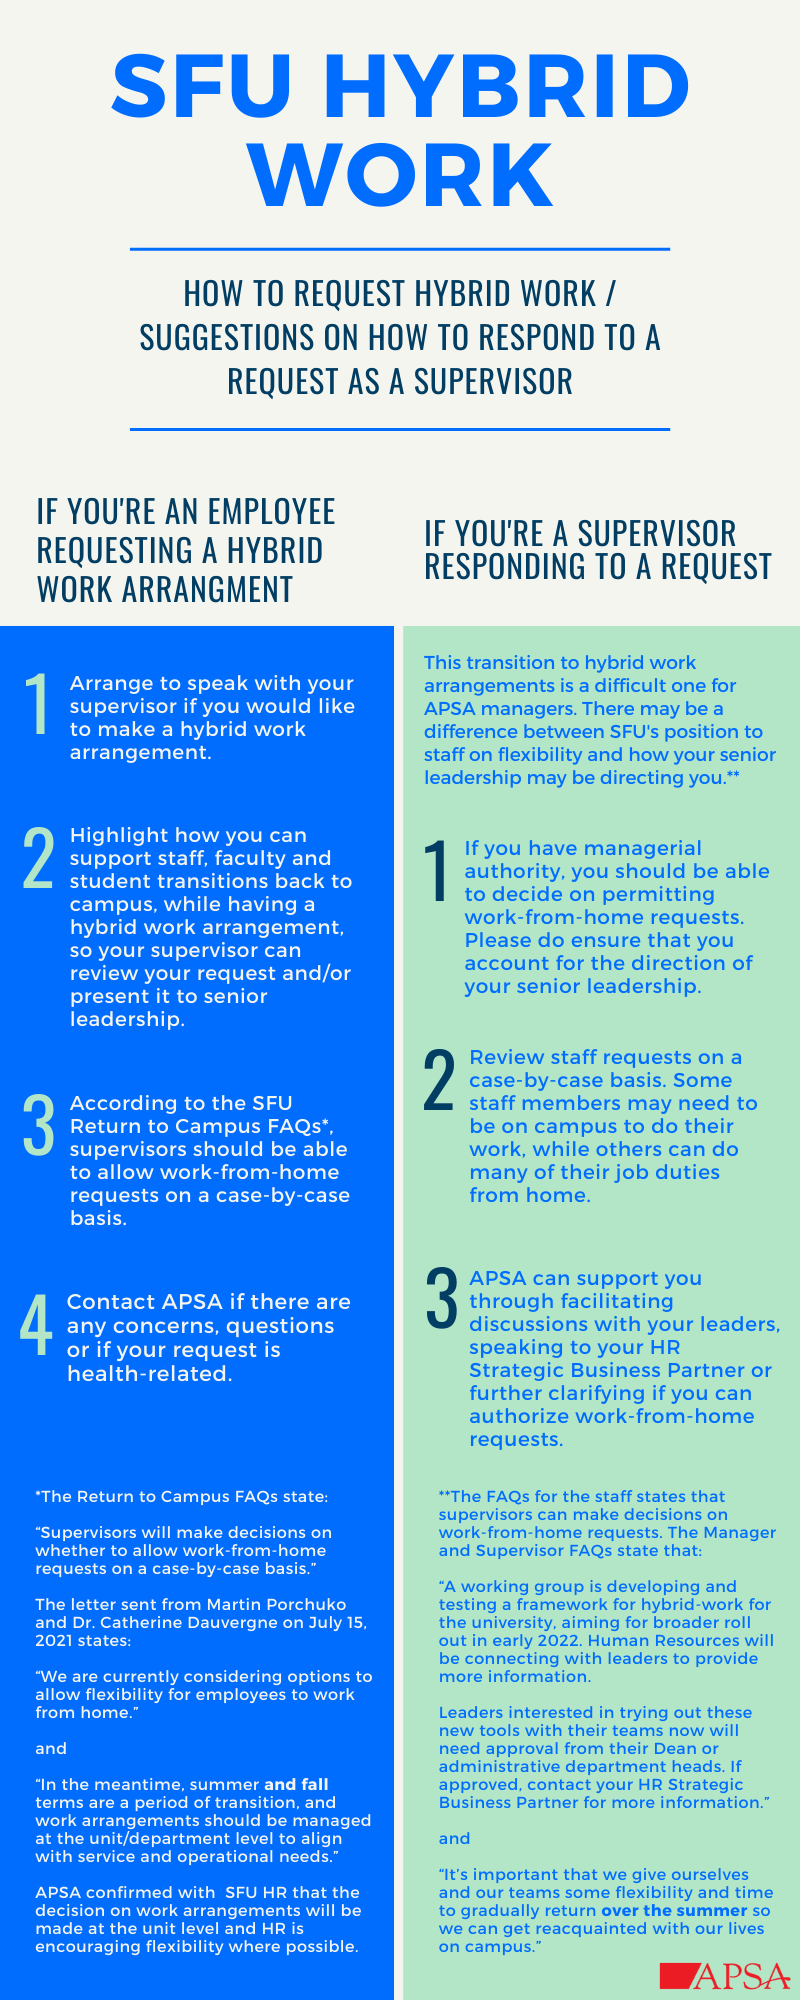 Hybrid Work How-To Infographic